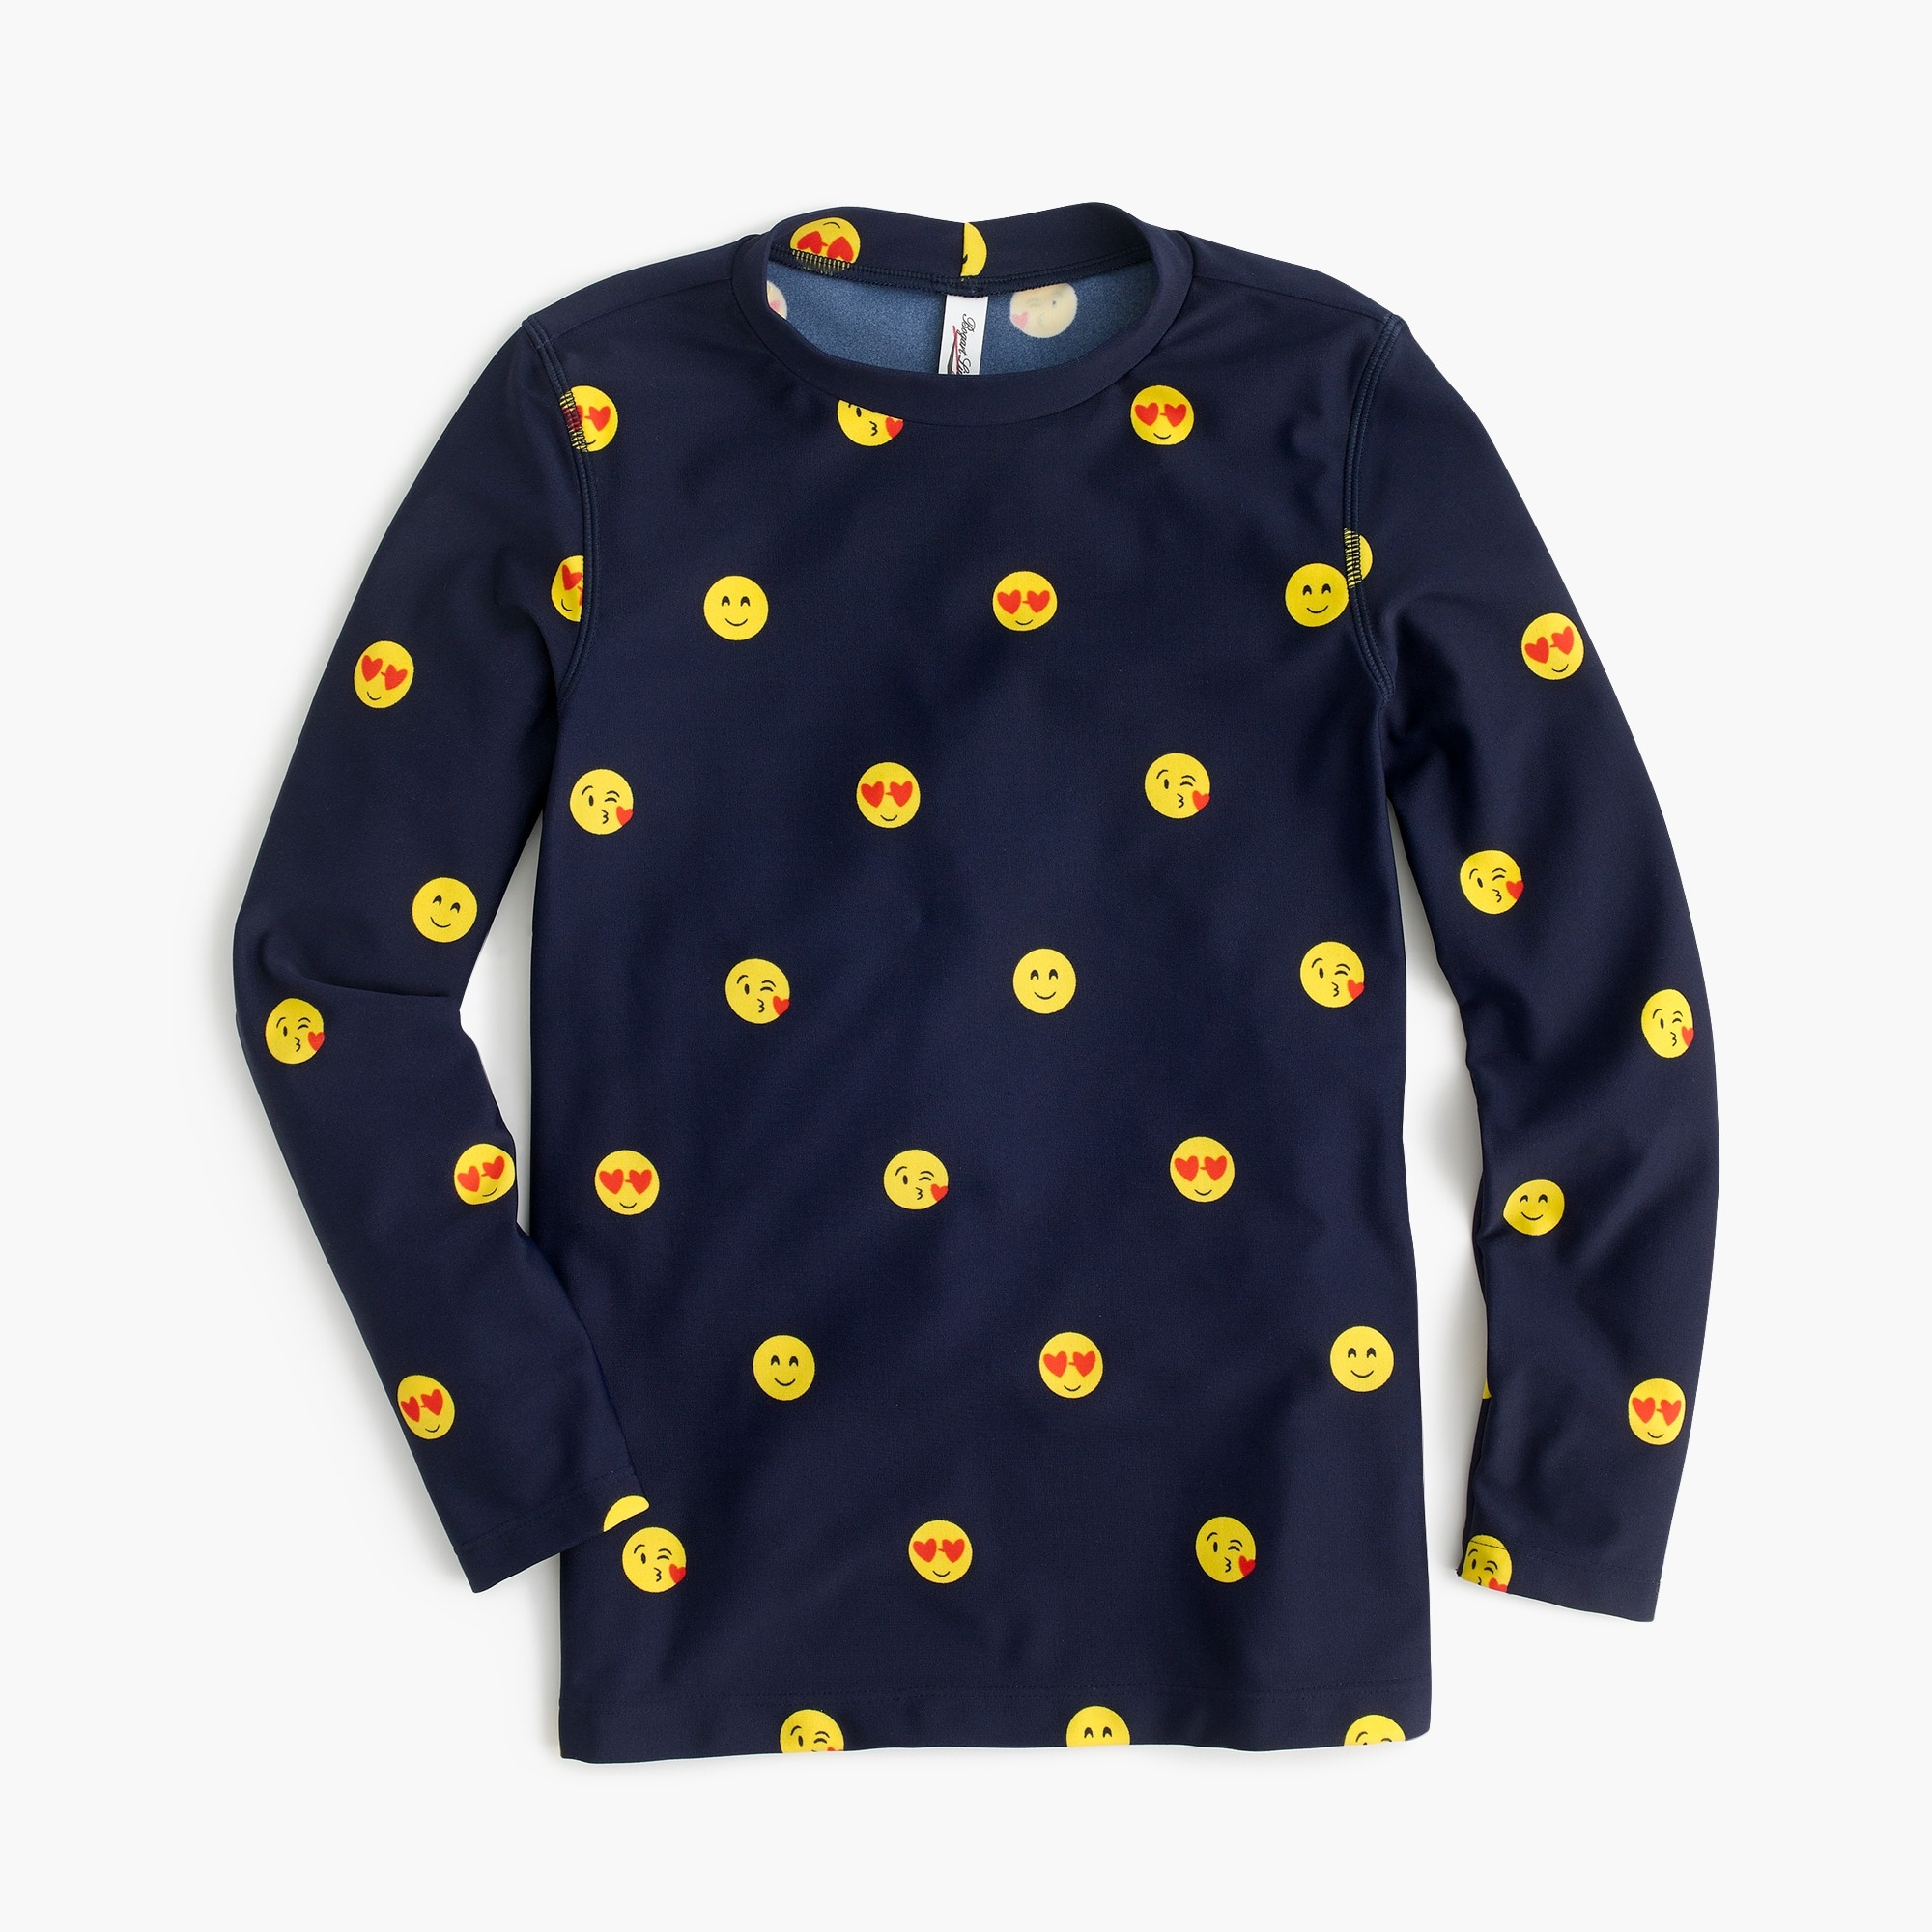 girls Girls' rash guard in emojis